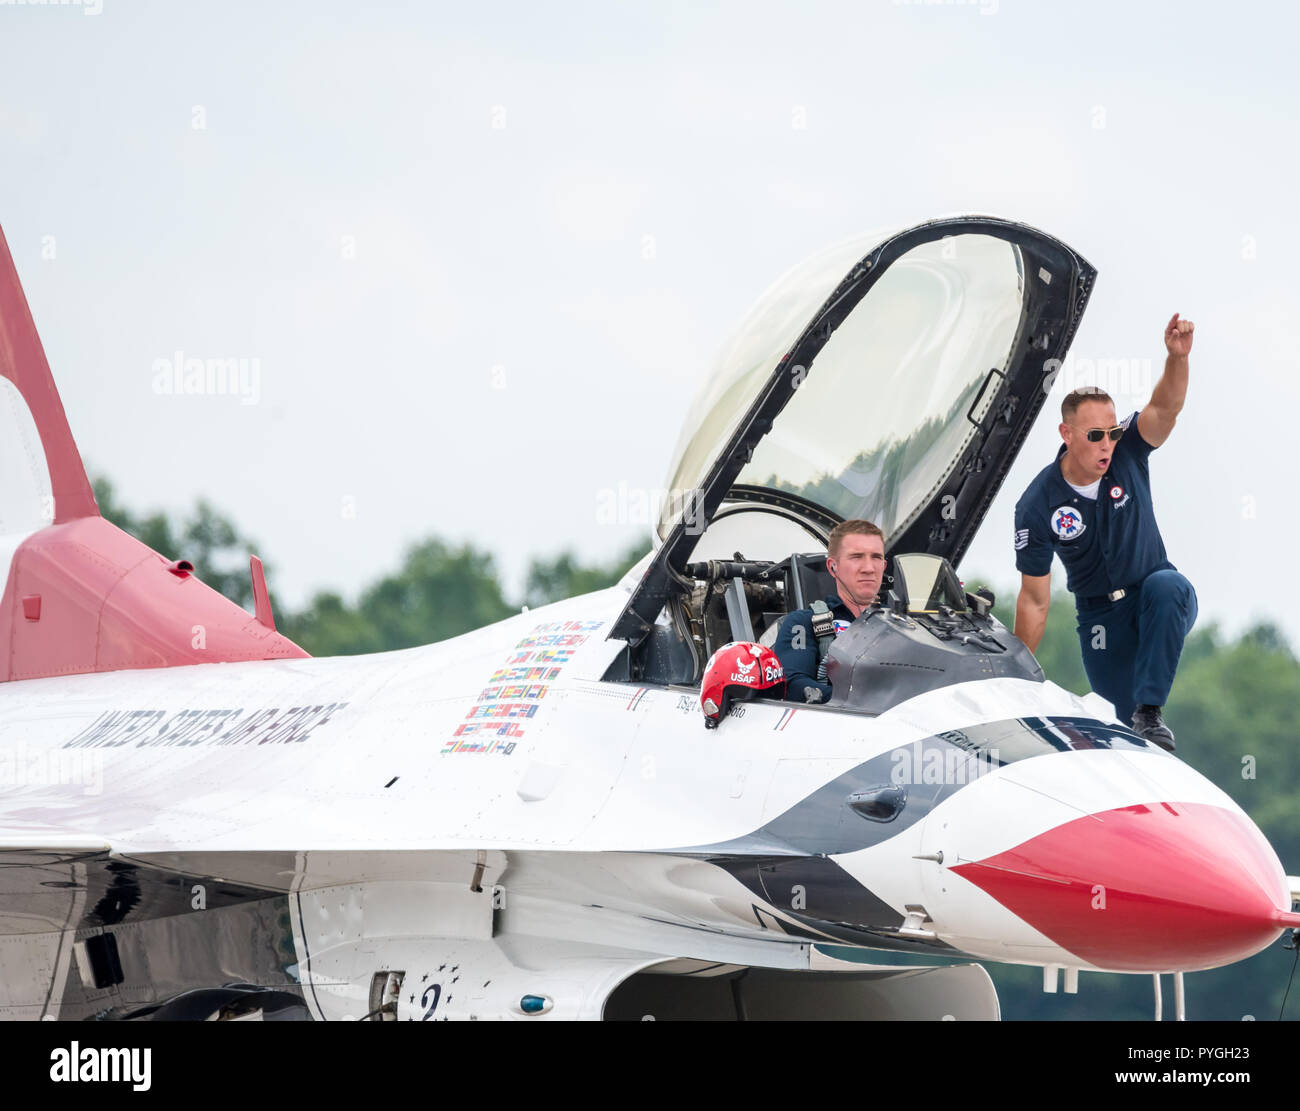 USAF Thunderbirds pilot and ground crew during the preflight check ceremony - Stock Image